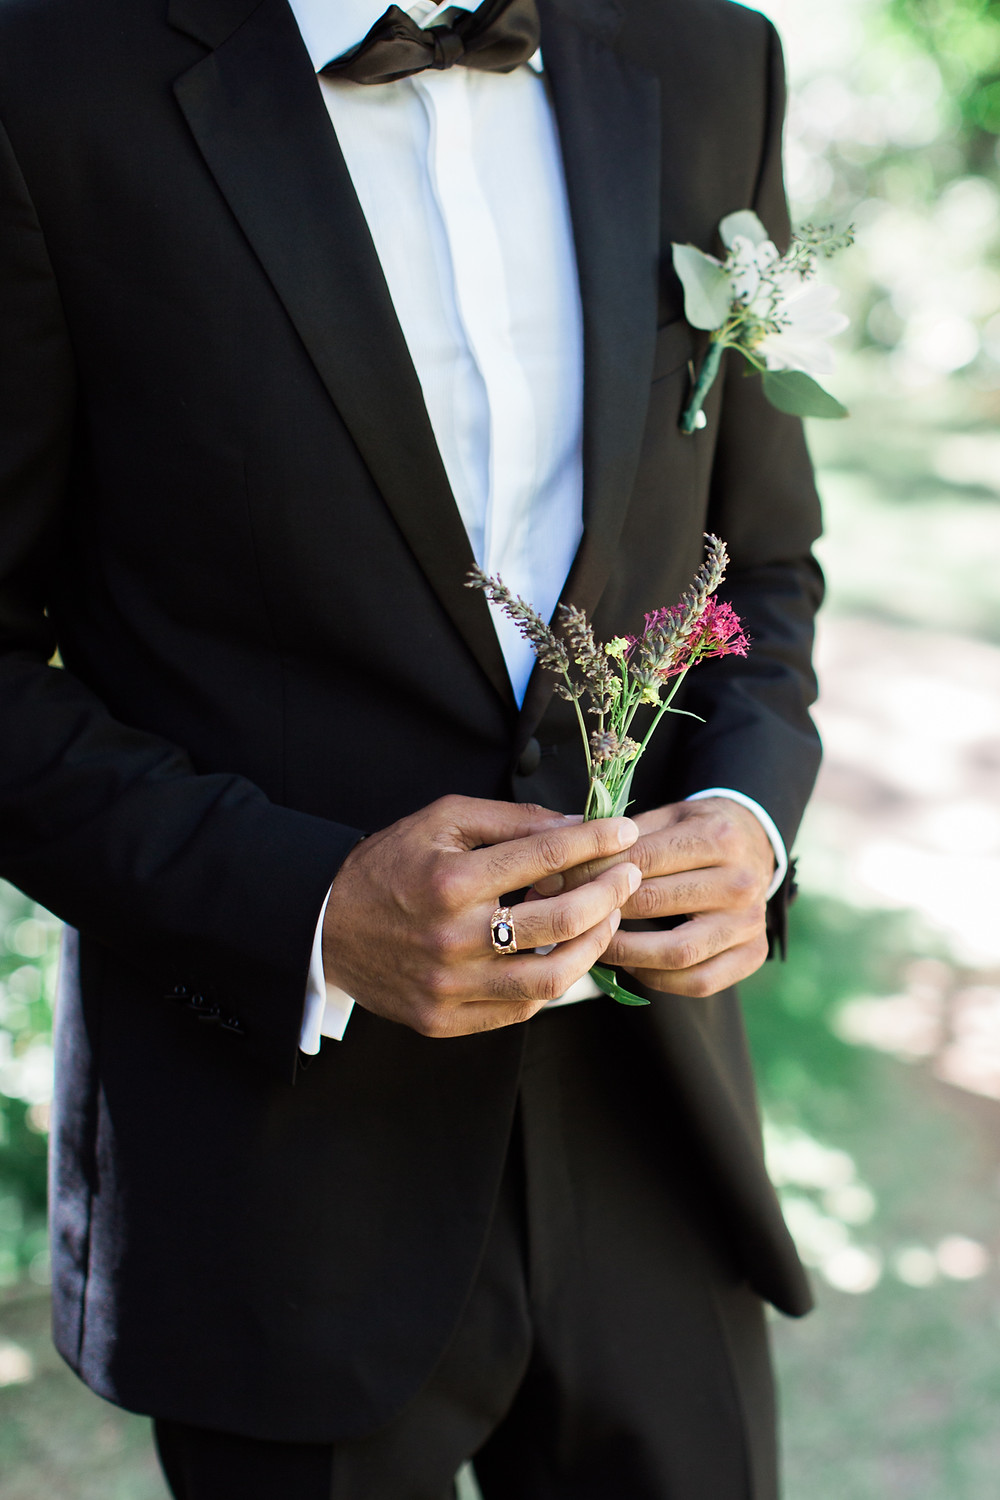 Groom hand-picked a small bouquet of flowers to give to his Bride during first look.